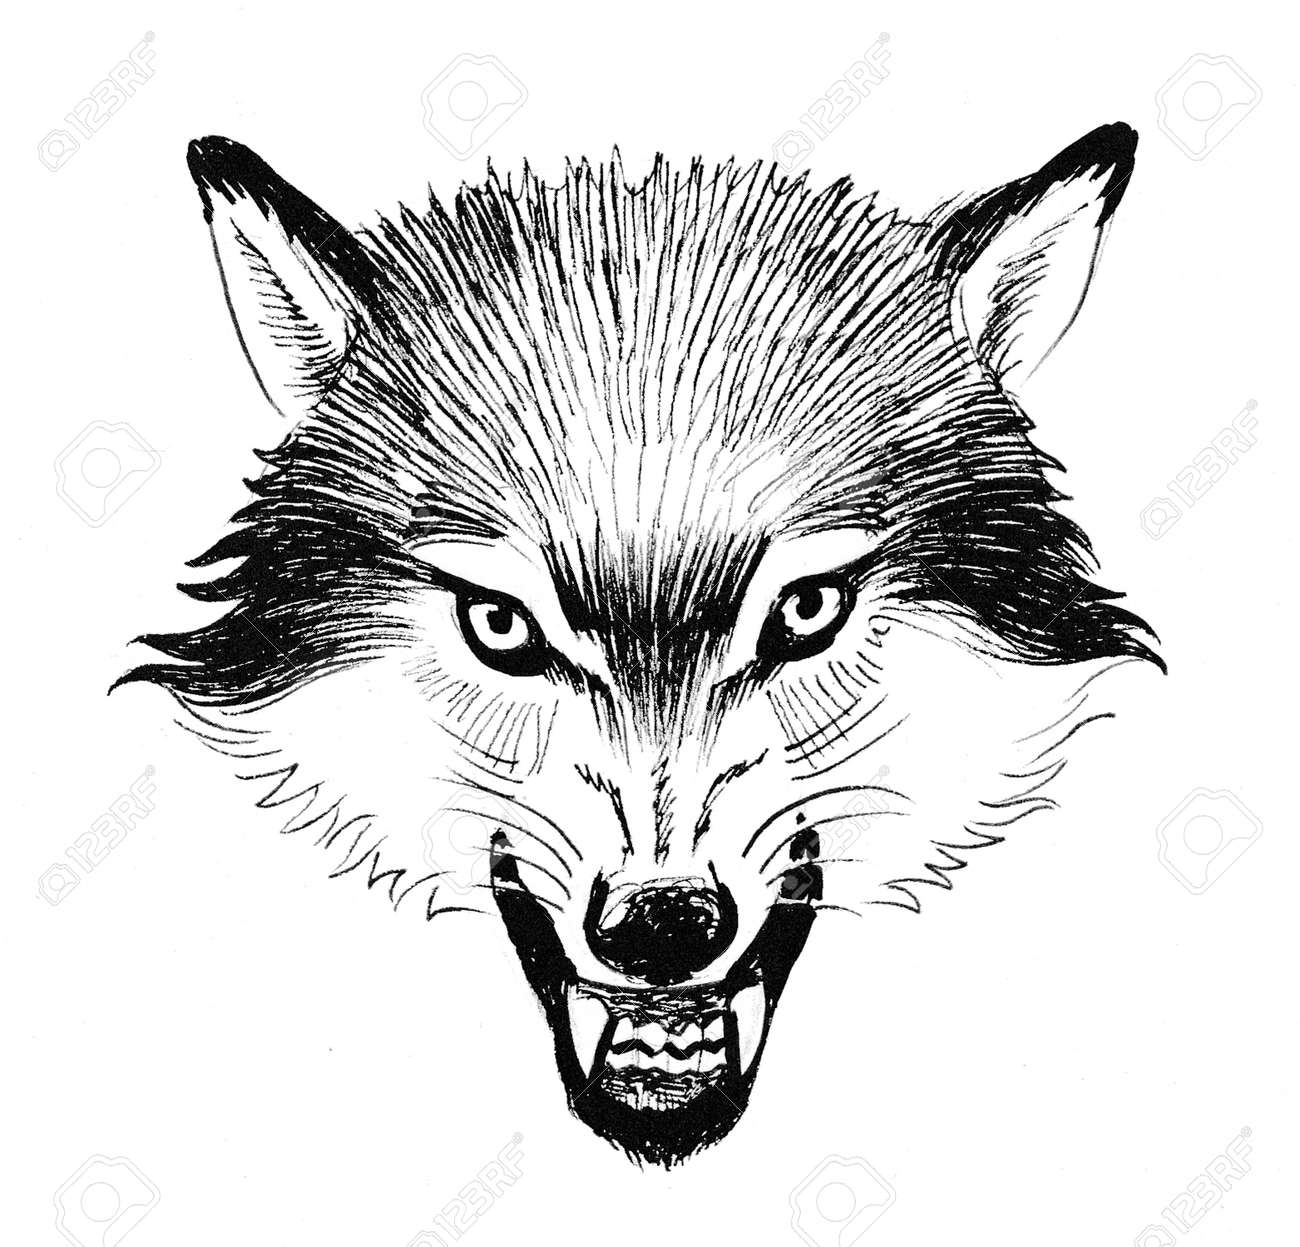 e9d9ea80d Angry Wolf Head. Ink Black And White Drawing Stock Photo, Picture ...